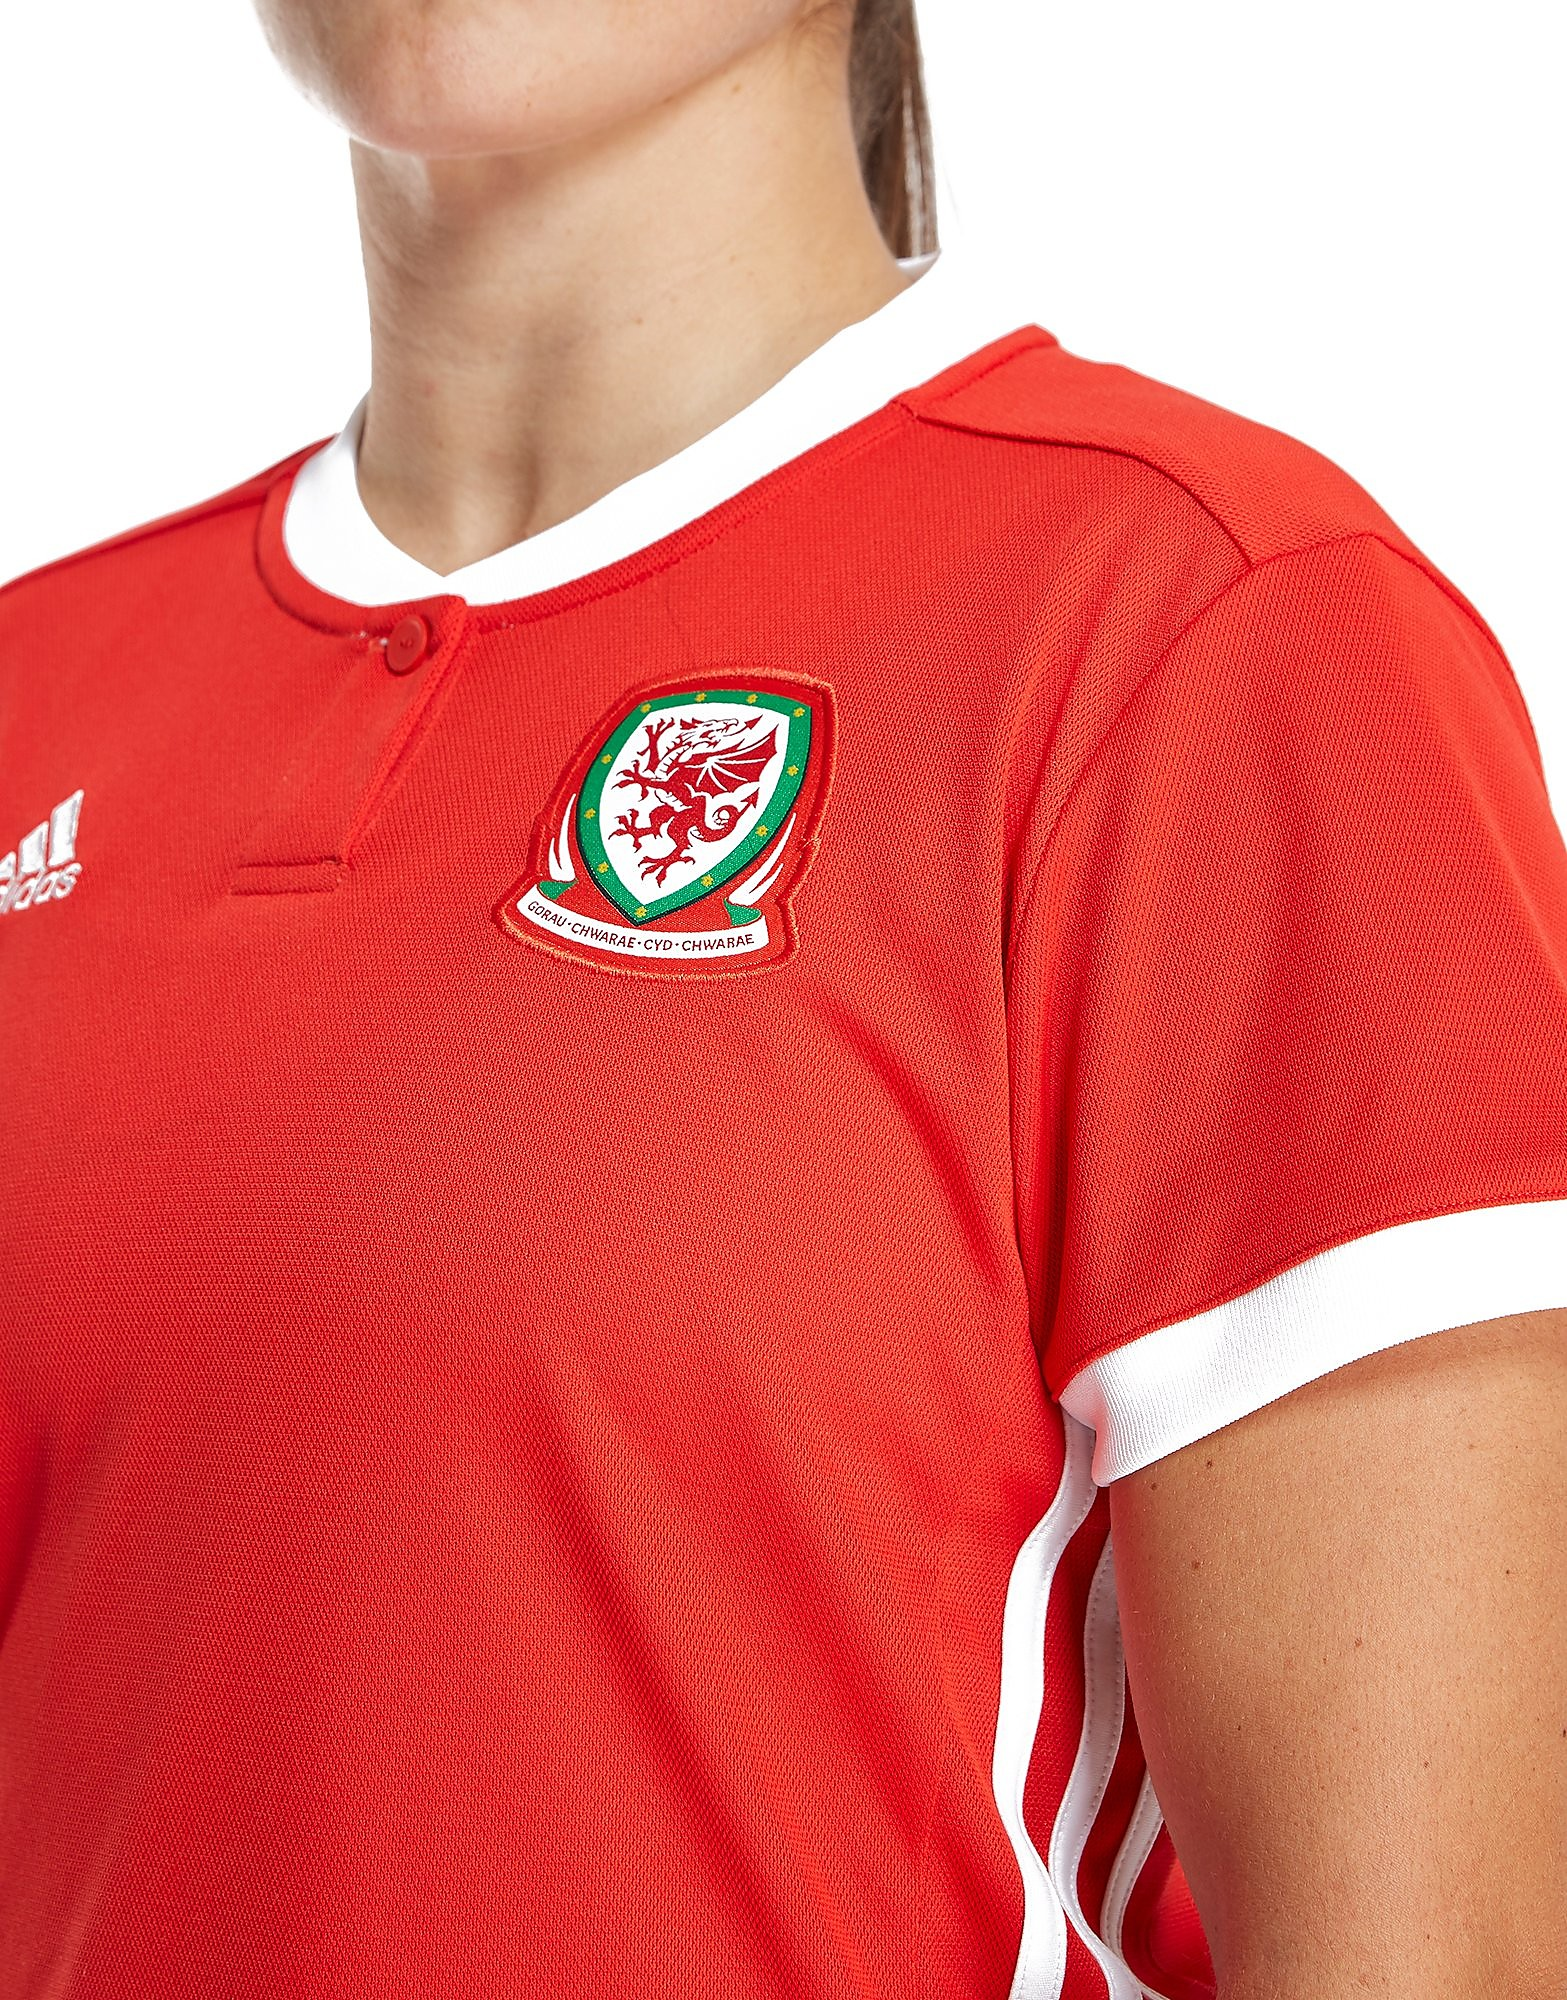 adidas Wales 2017/18 Home Shirt Women's